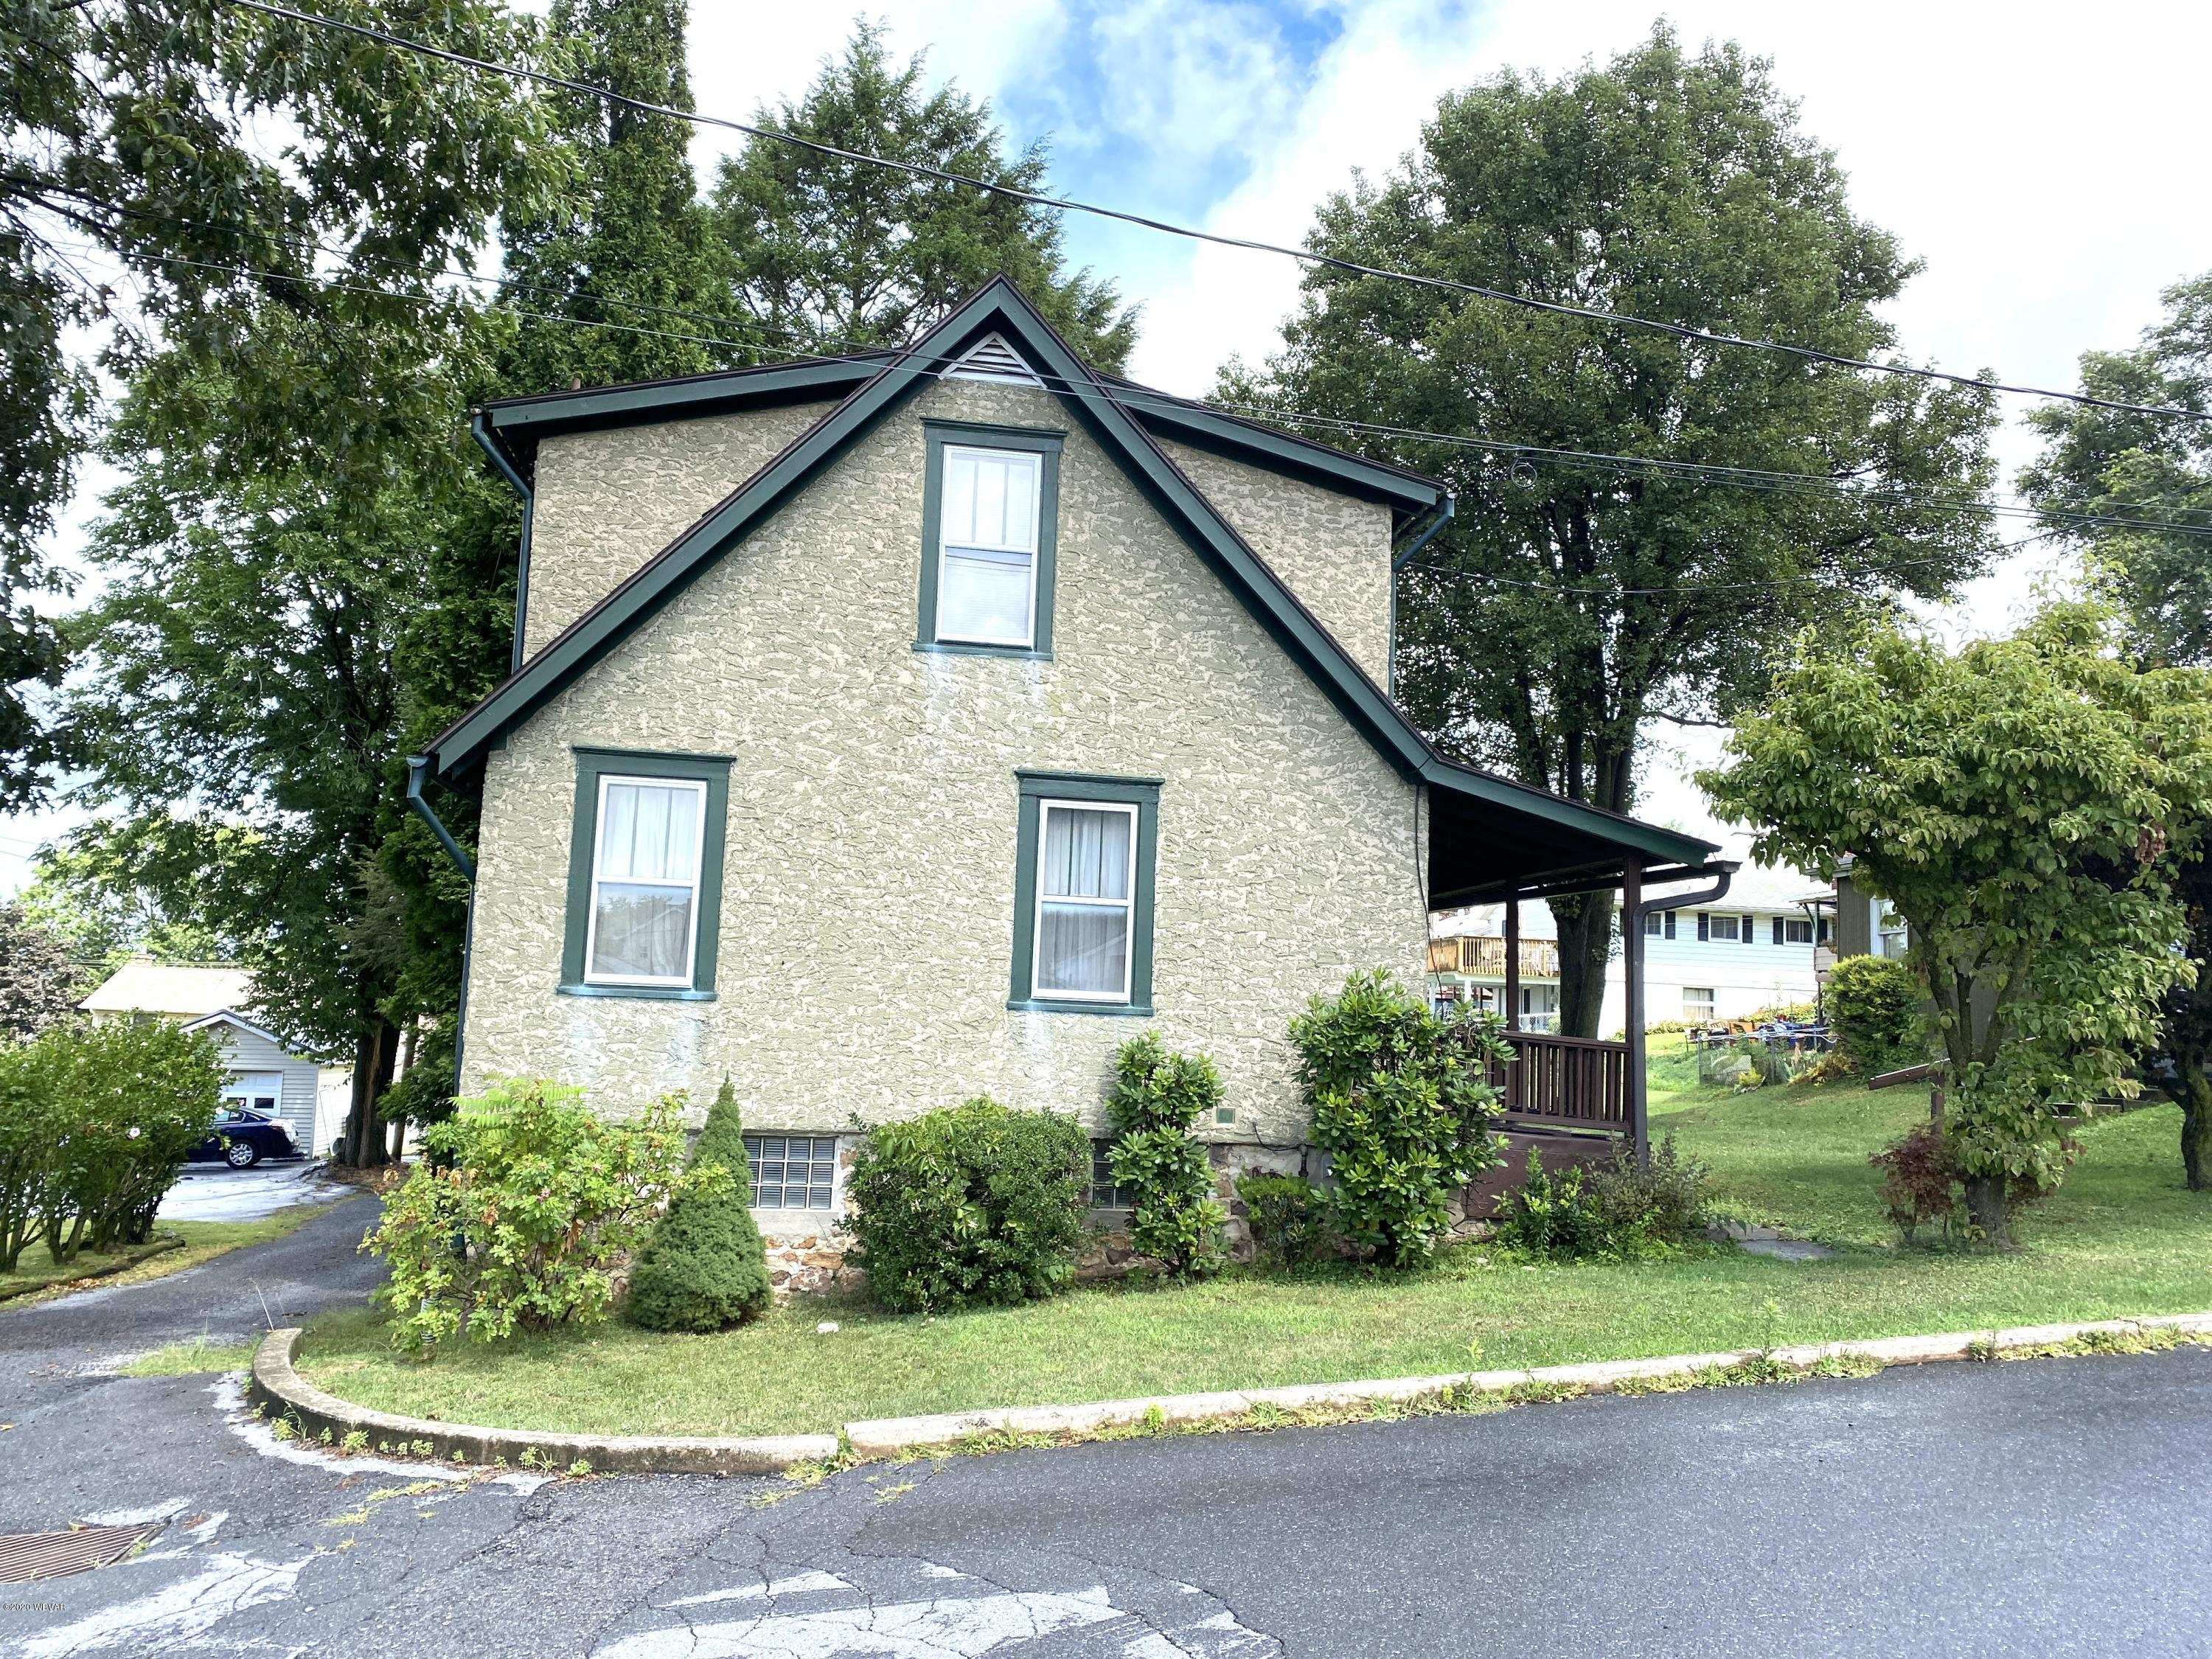 1190 MOUNTAIN AVENUE, S. Williamsport, PA 17702, 1 Bedroom Bedrooms, ,2 BathroomsBathrooms,Residential,For sale,MOUNTAIN,WB-90771